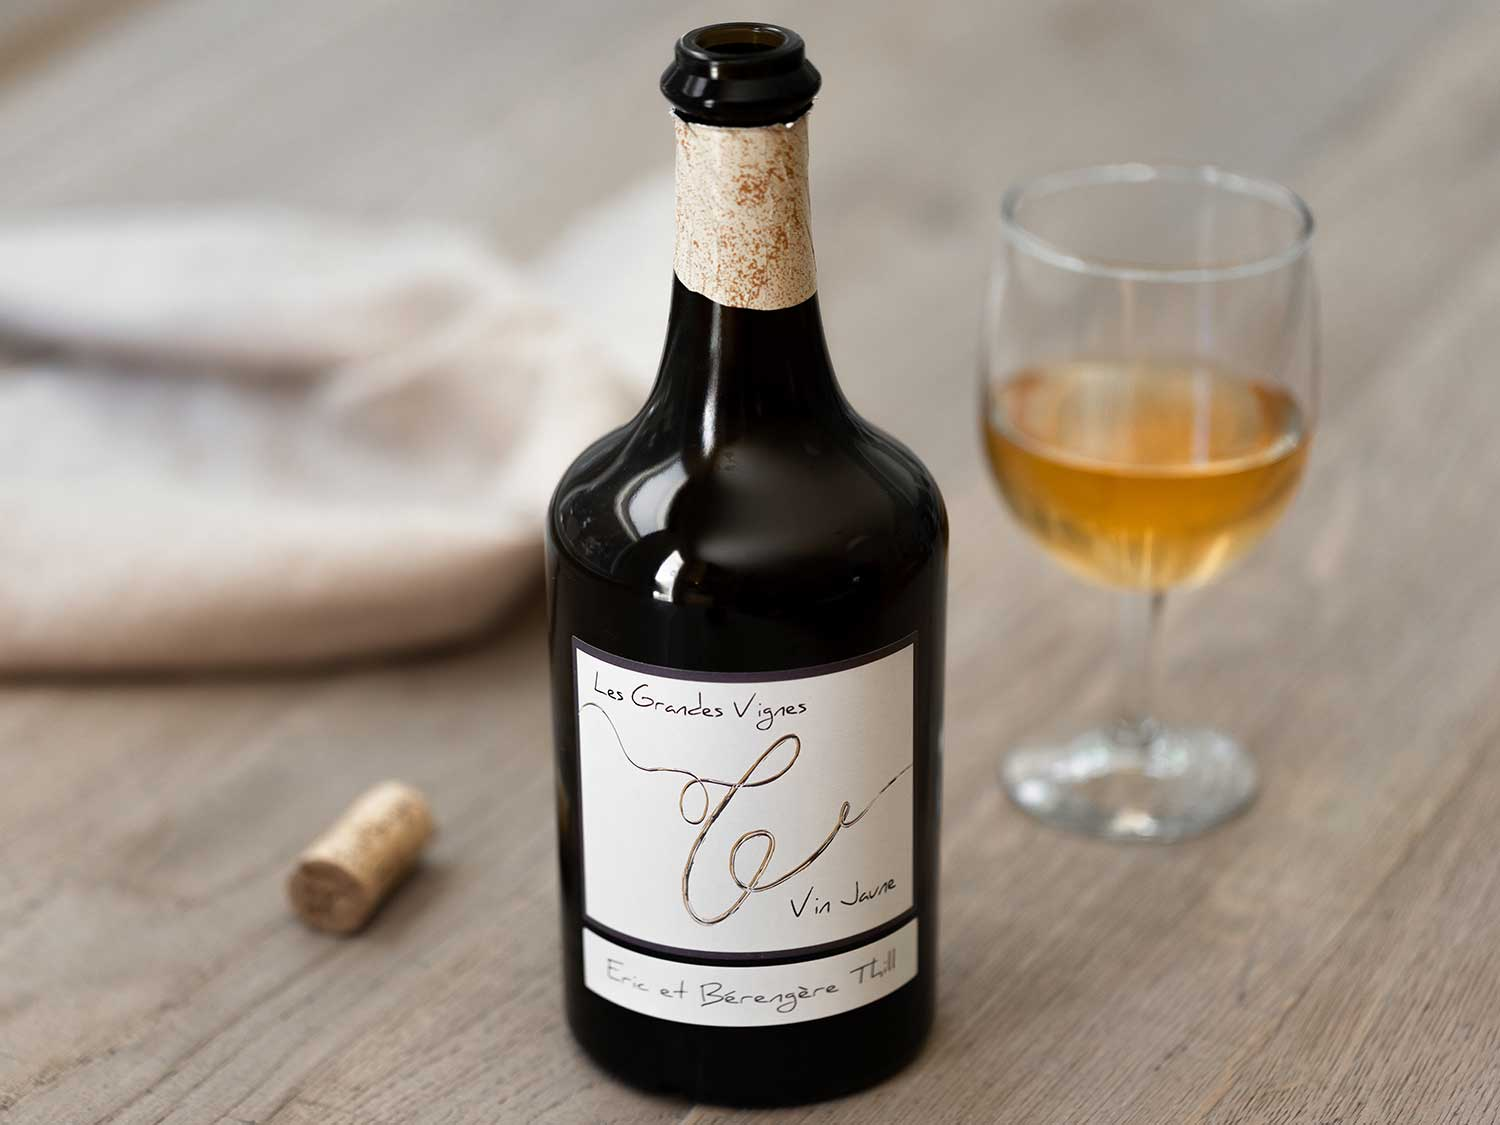 Vin jaune comes from the Jura region in the French Alps, which is also the birthplace of Comté cheese.